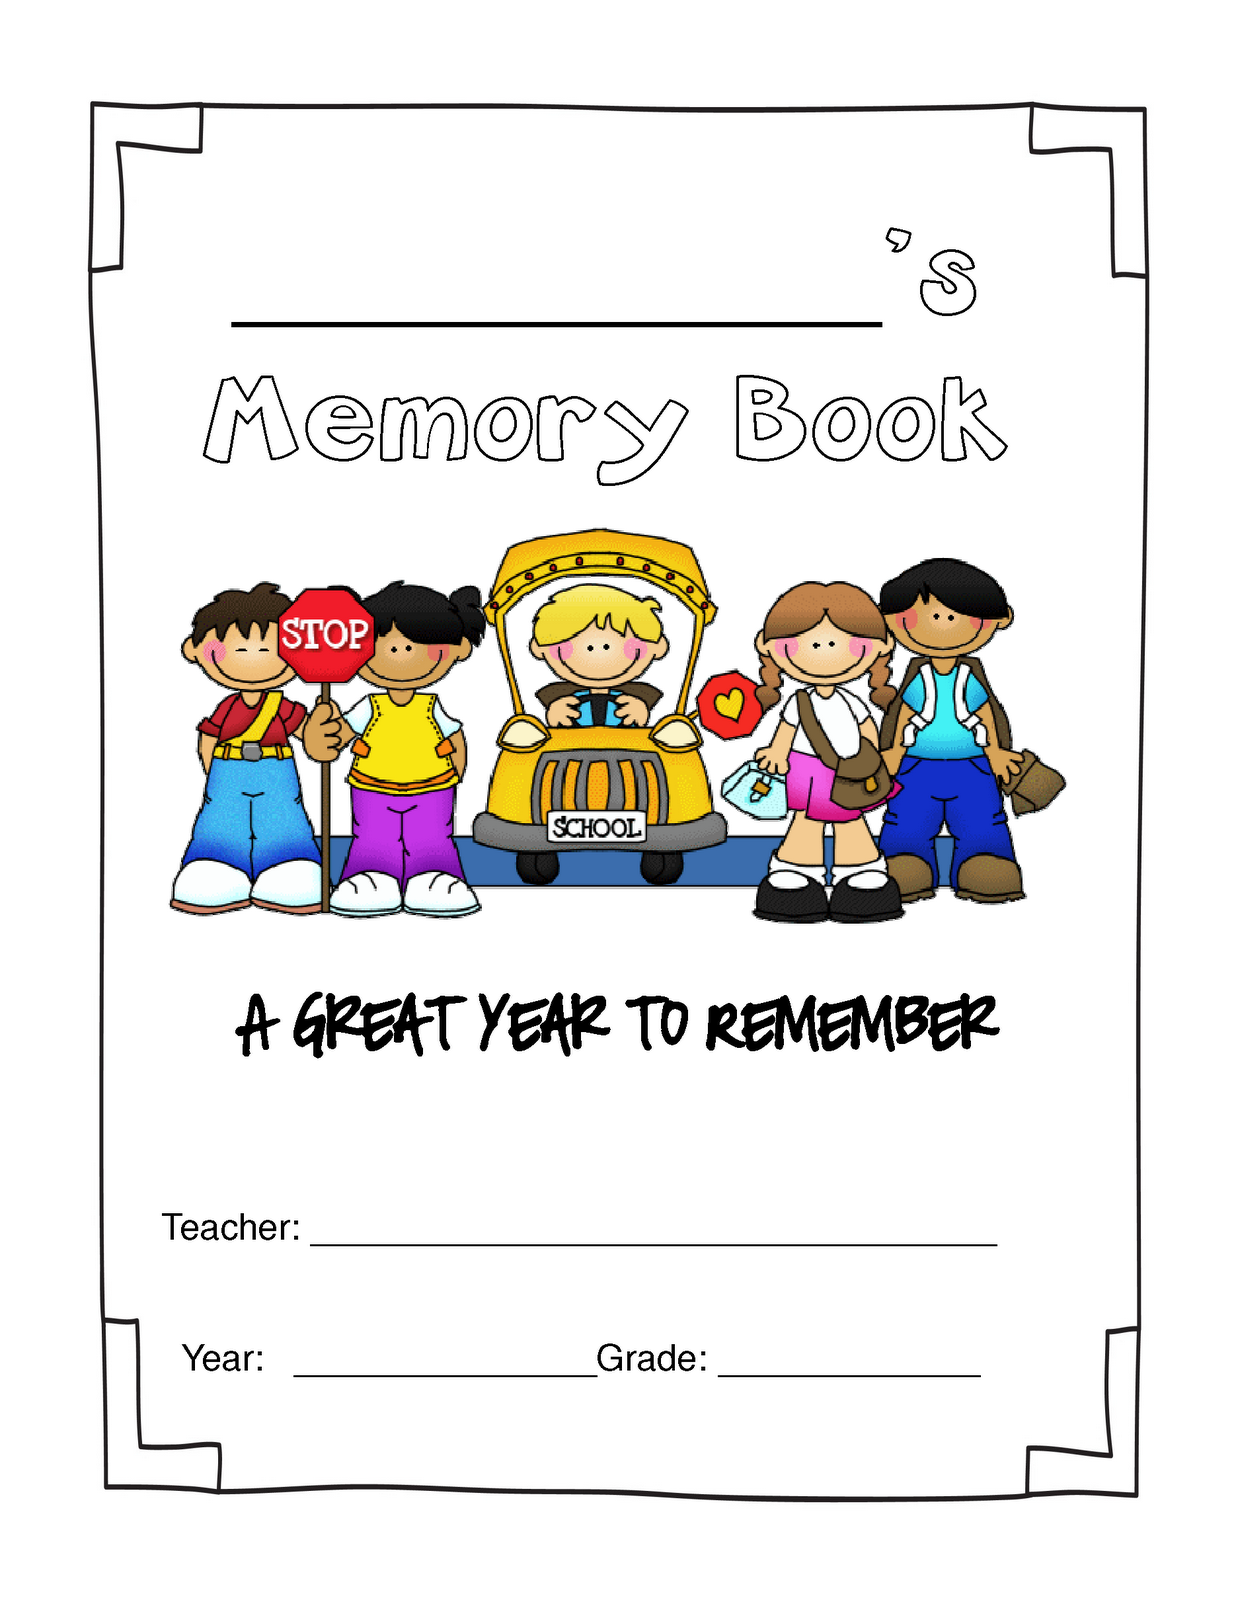 school year clipart - photo #48